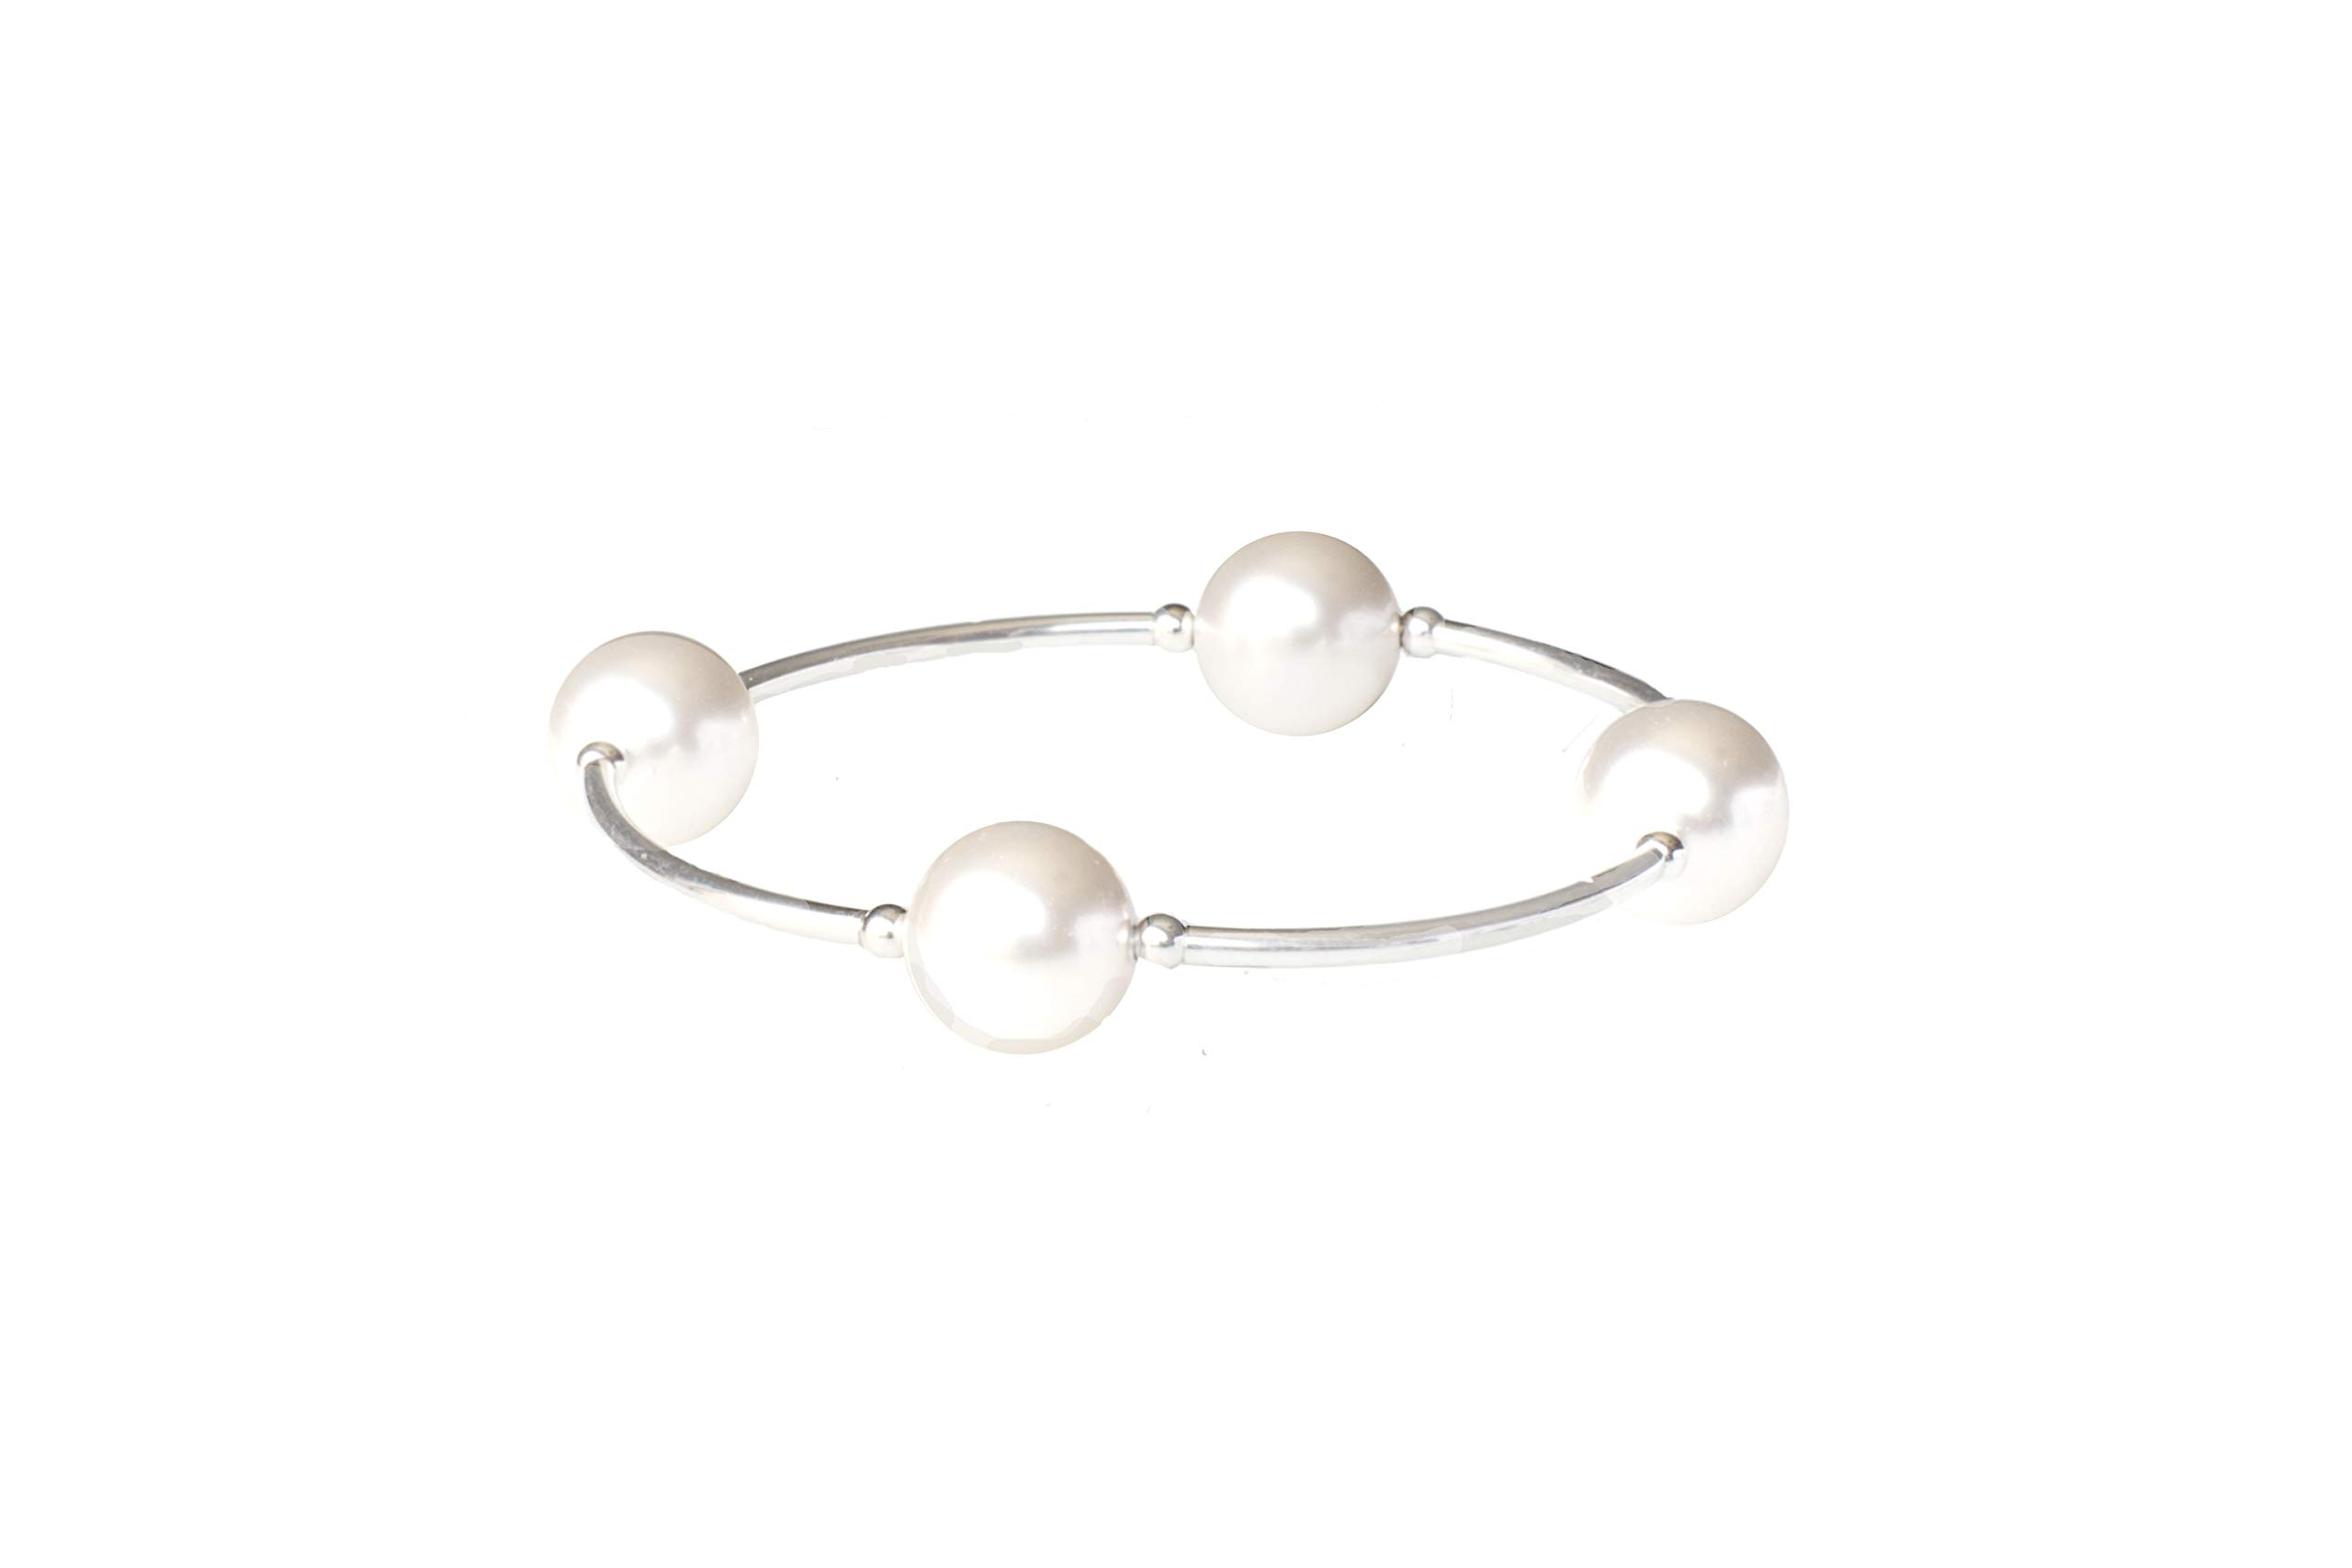 Blessing Bracelet by Made As Intended - 12MM White Swarovski Simulated Pearls